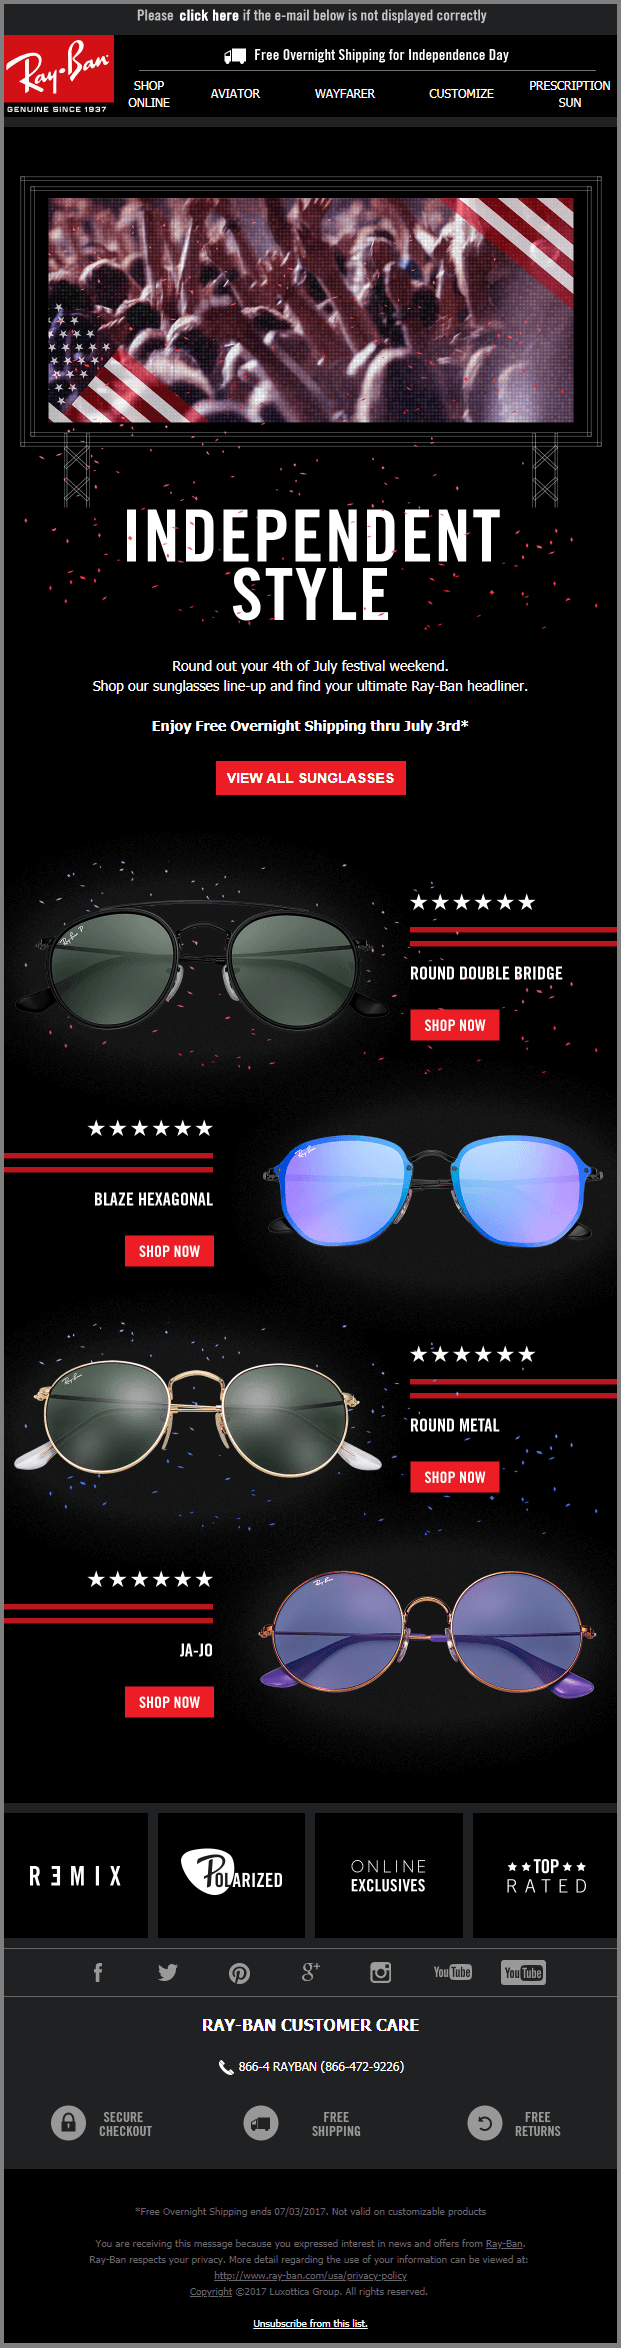 Ray-Ban_Email